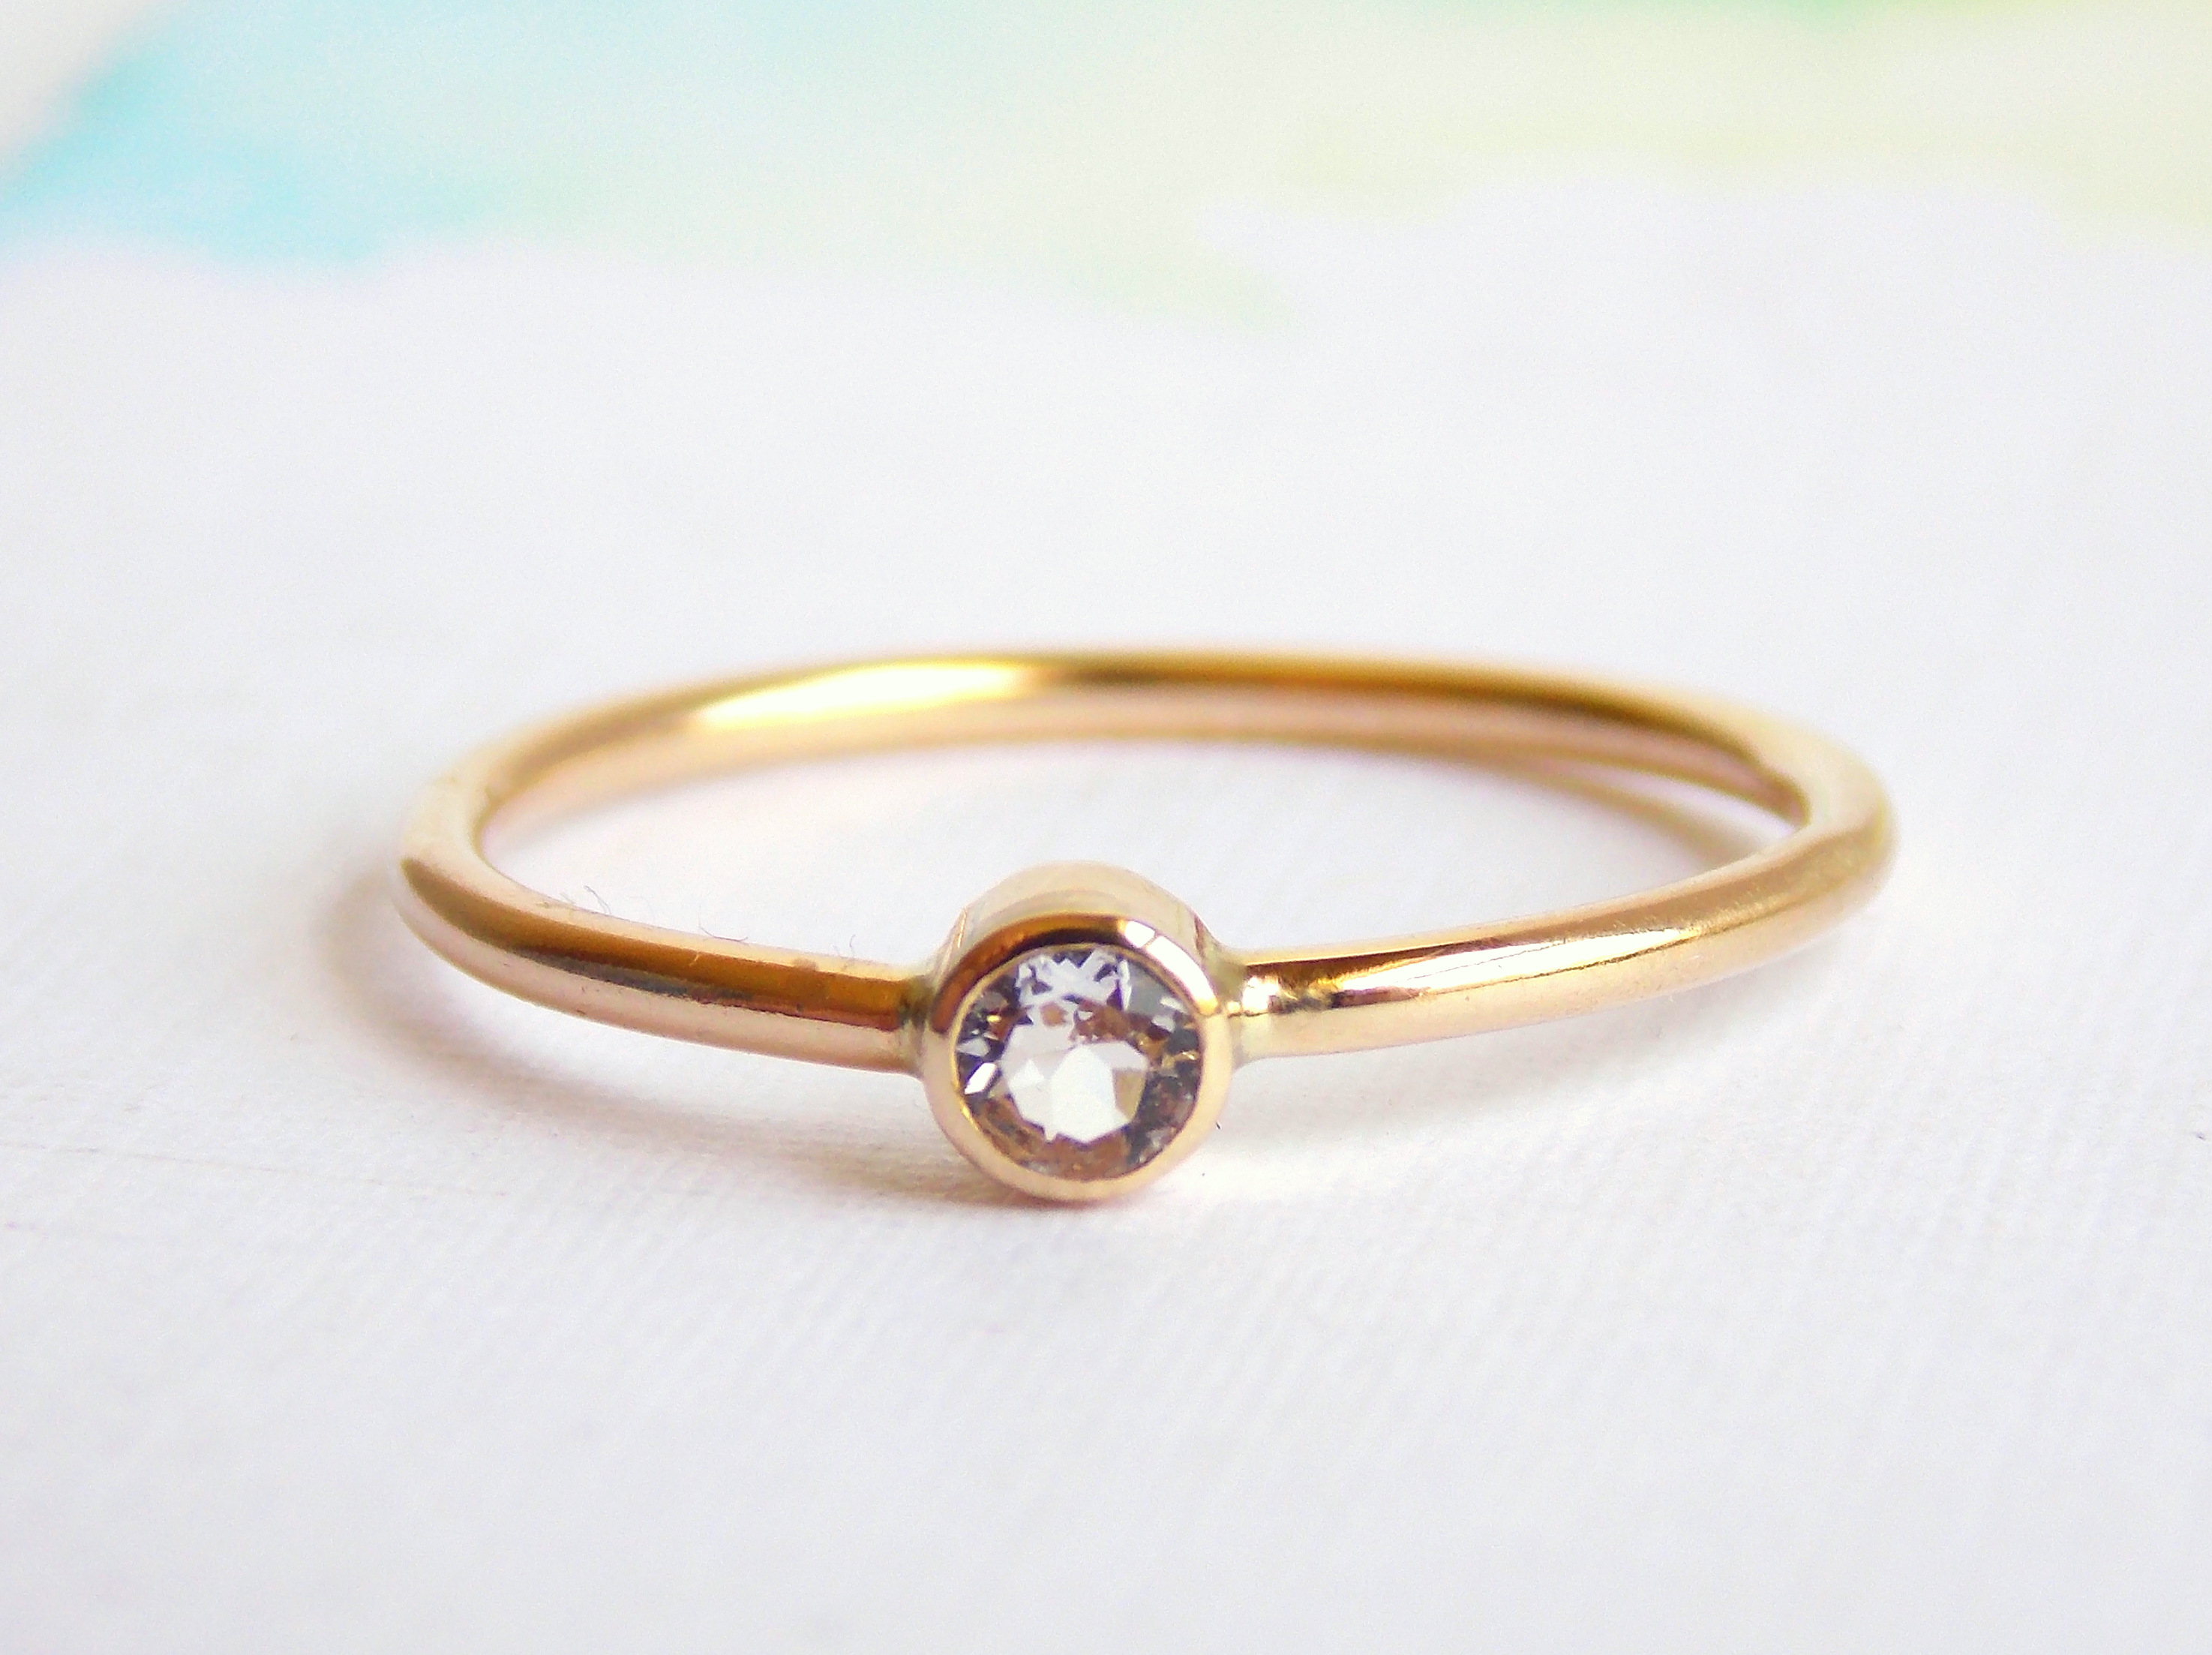 sacred image rings give engagement wedding that simplistic you campus fever her will heart school